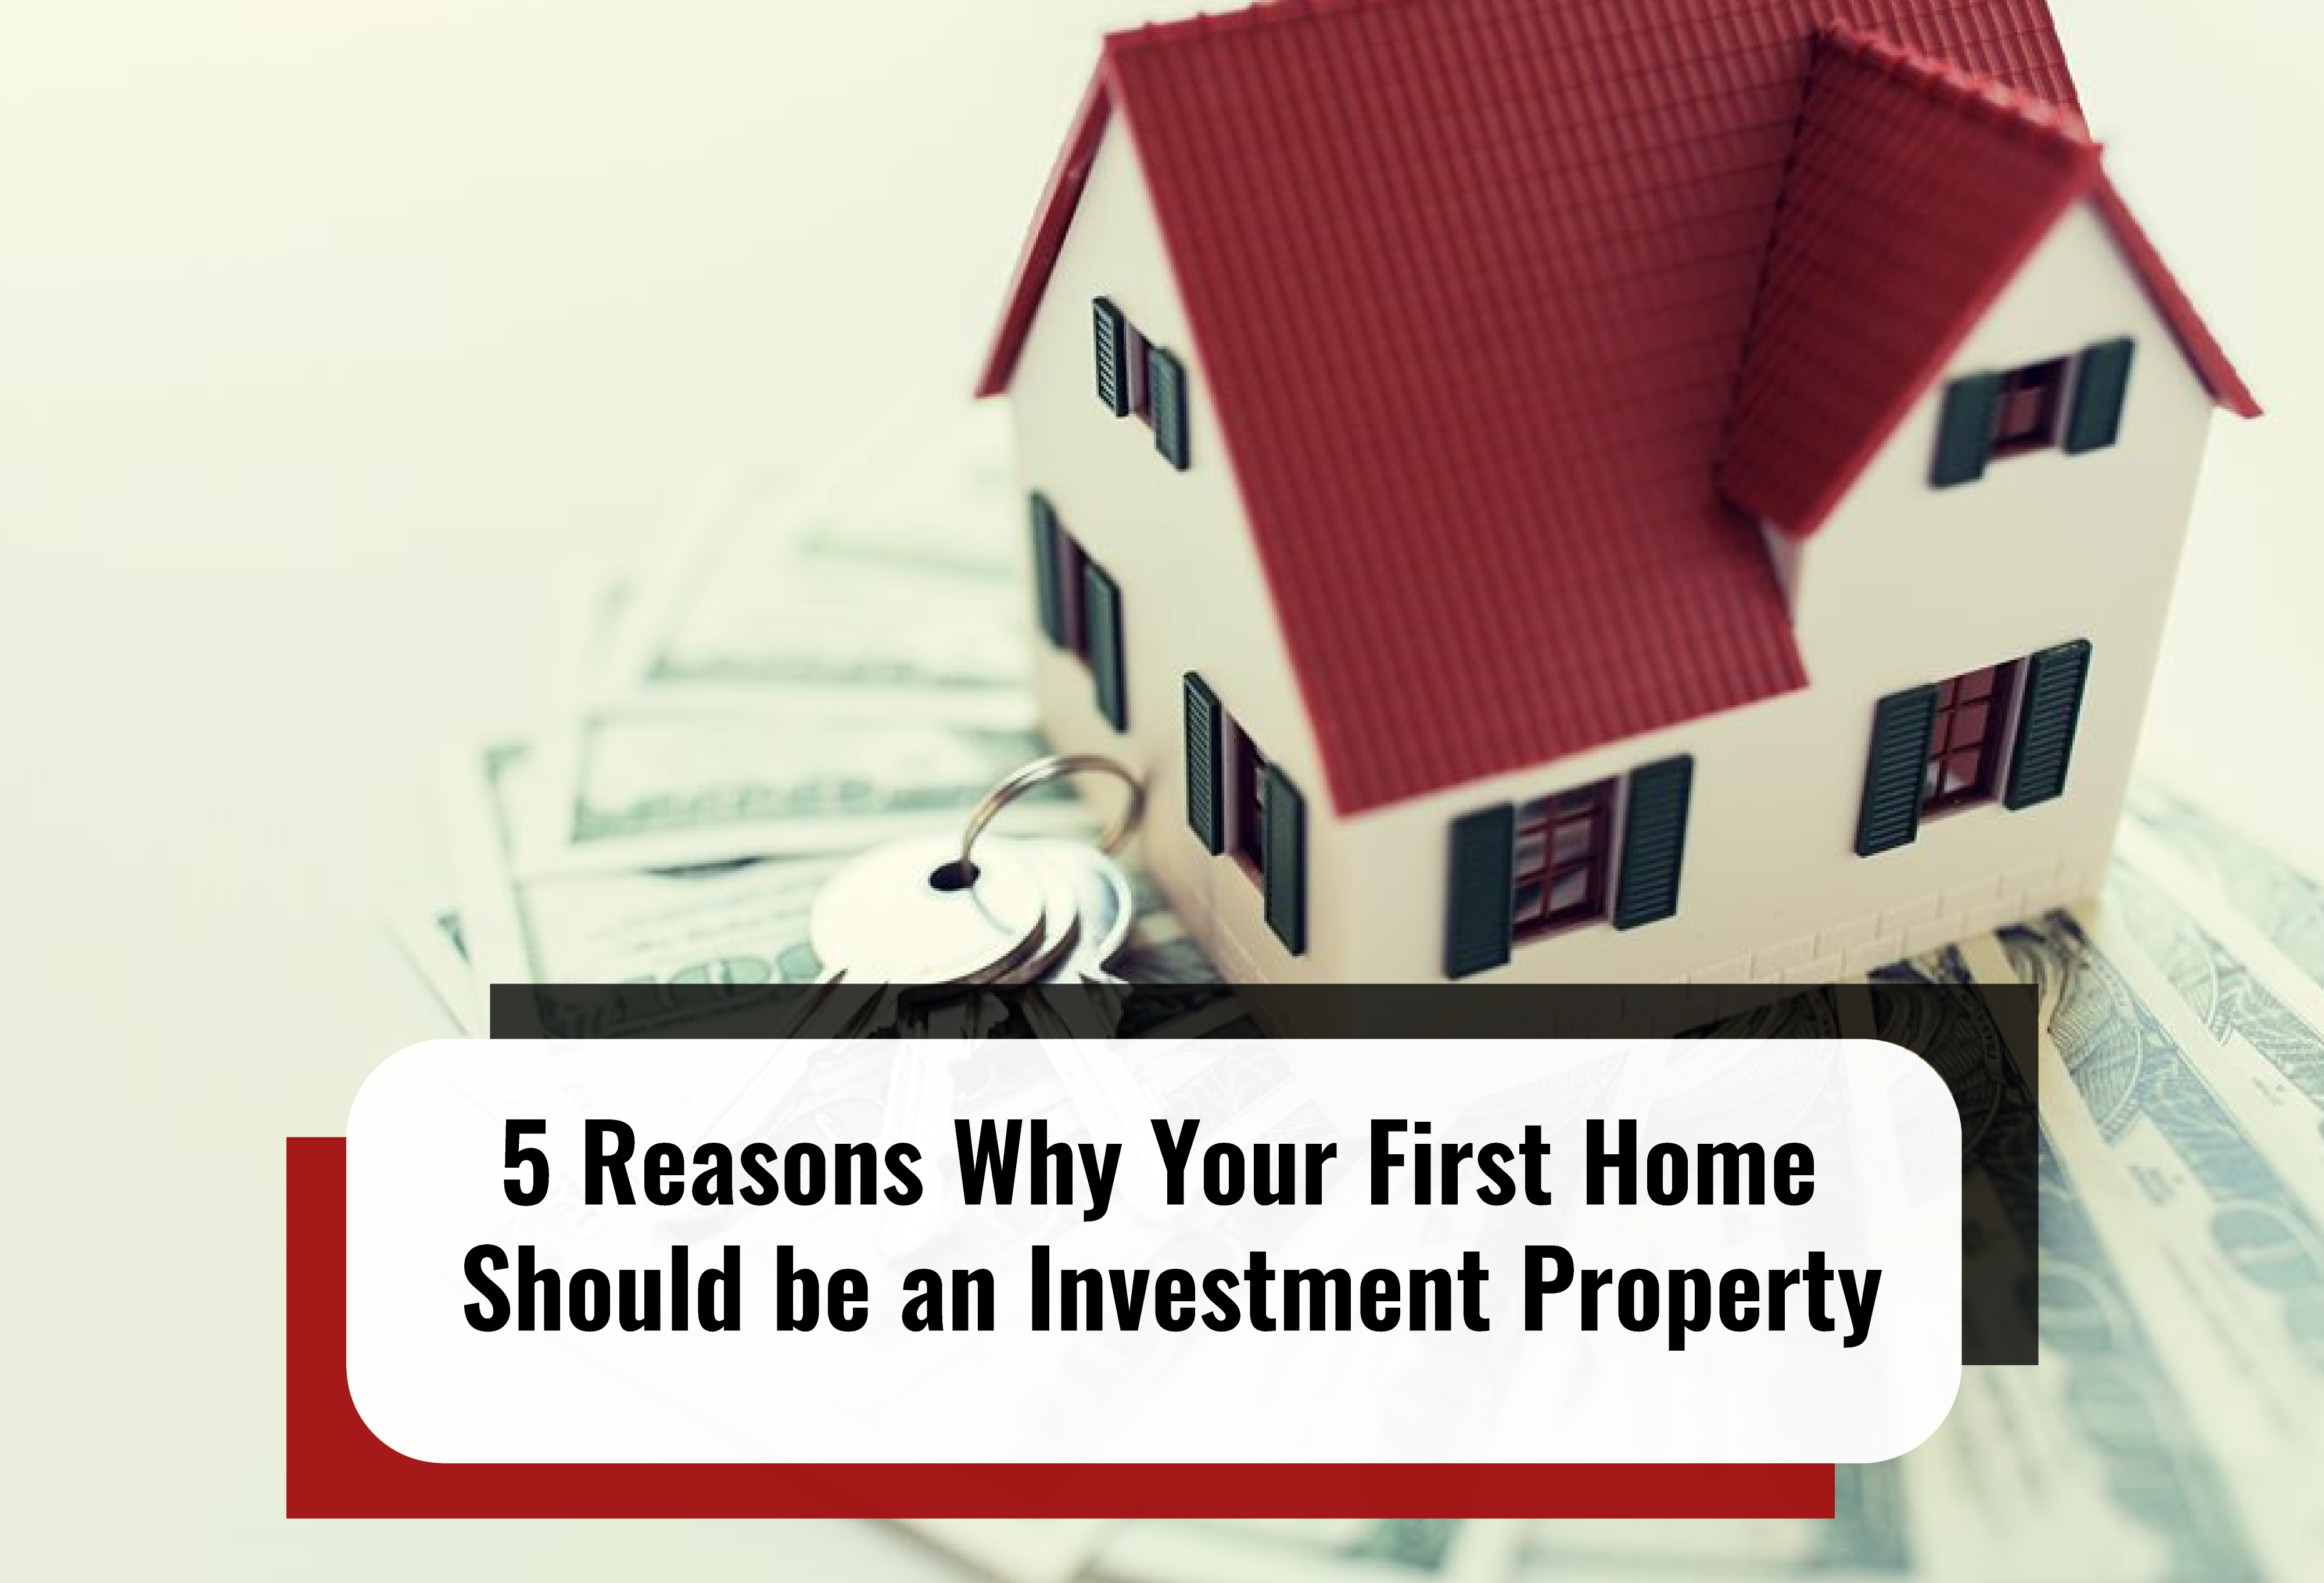 5 Reasons Why Your First Home Should be an Investment Property